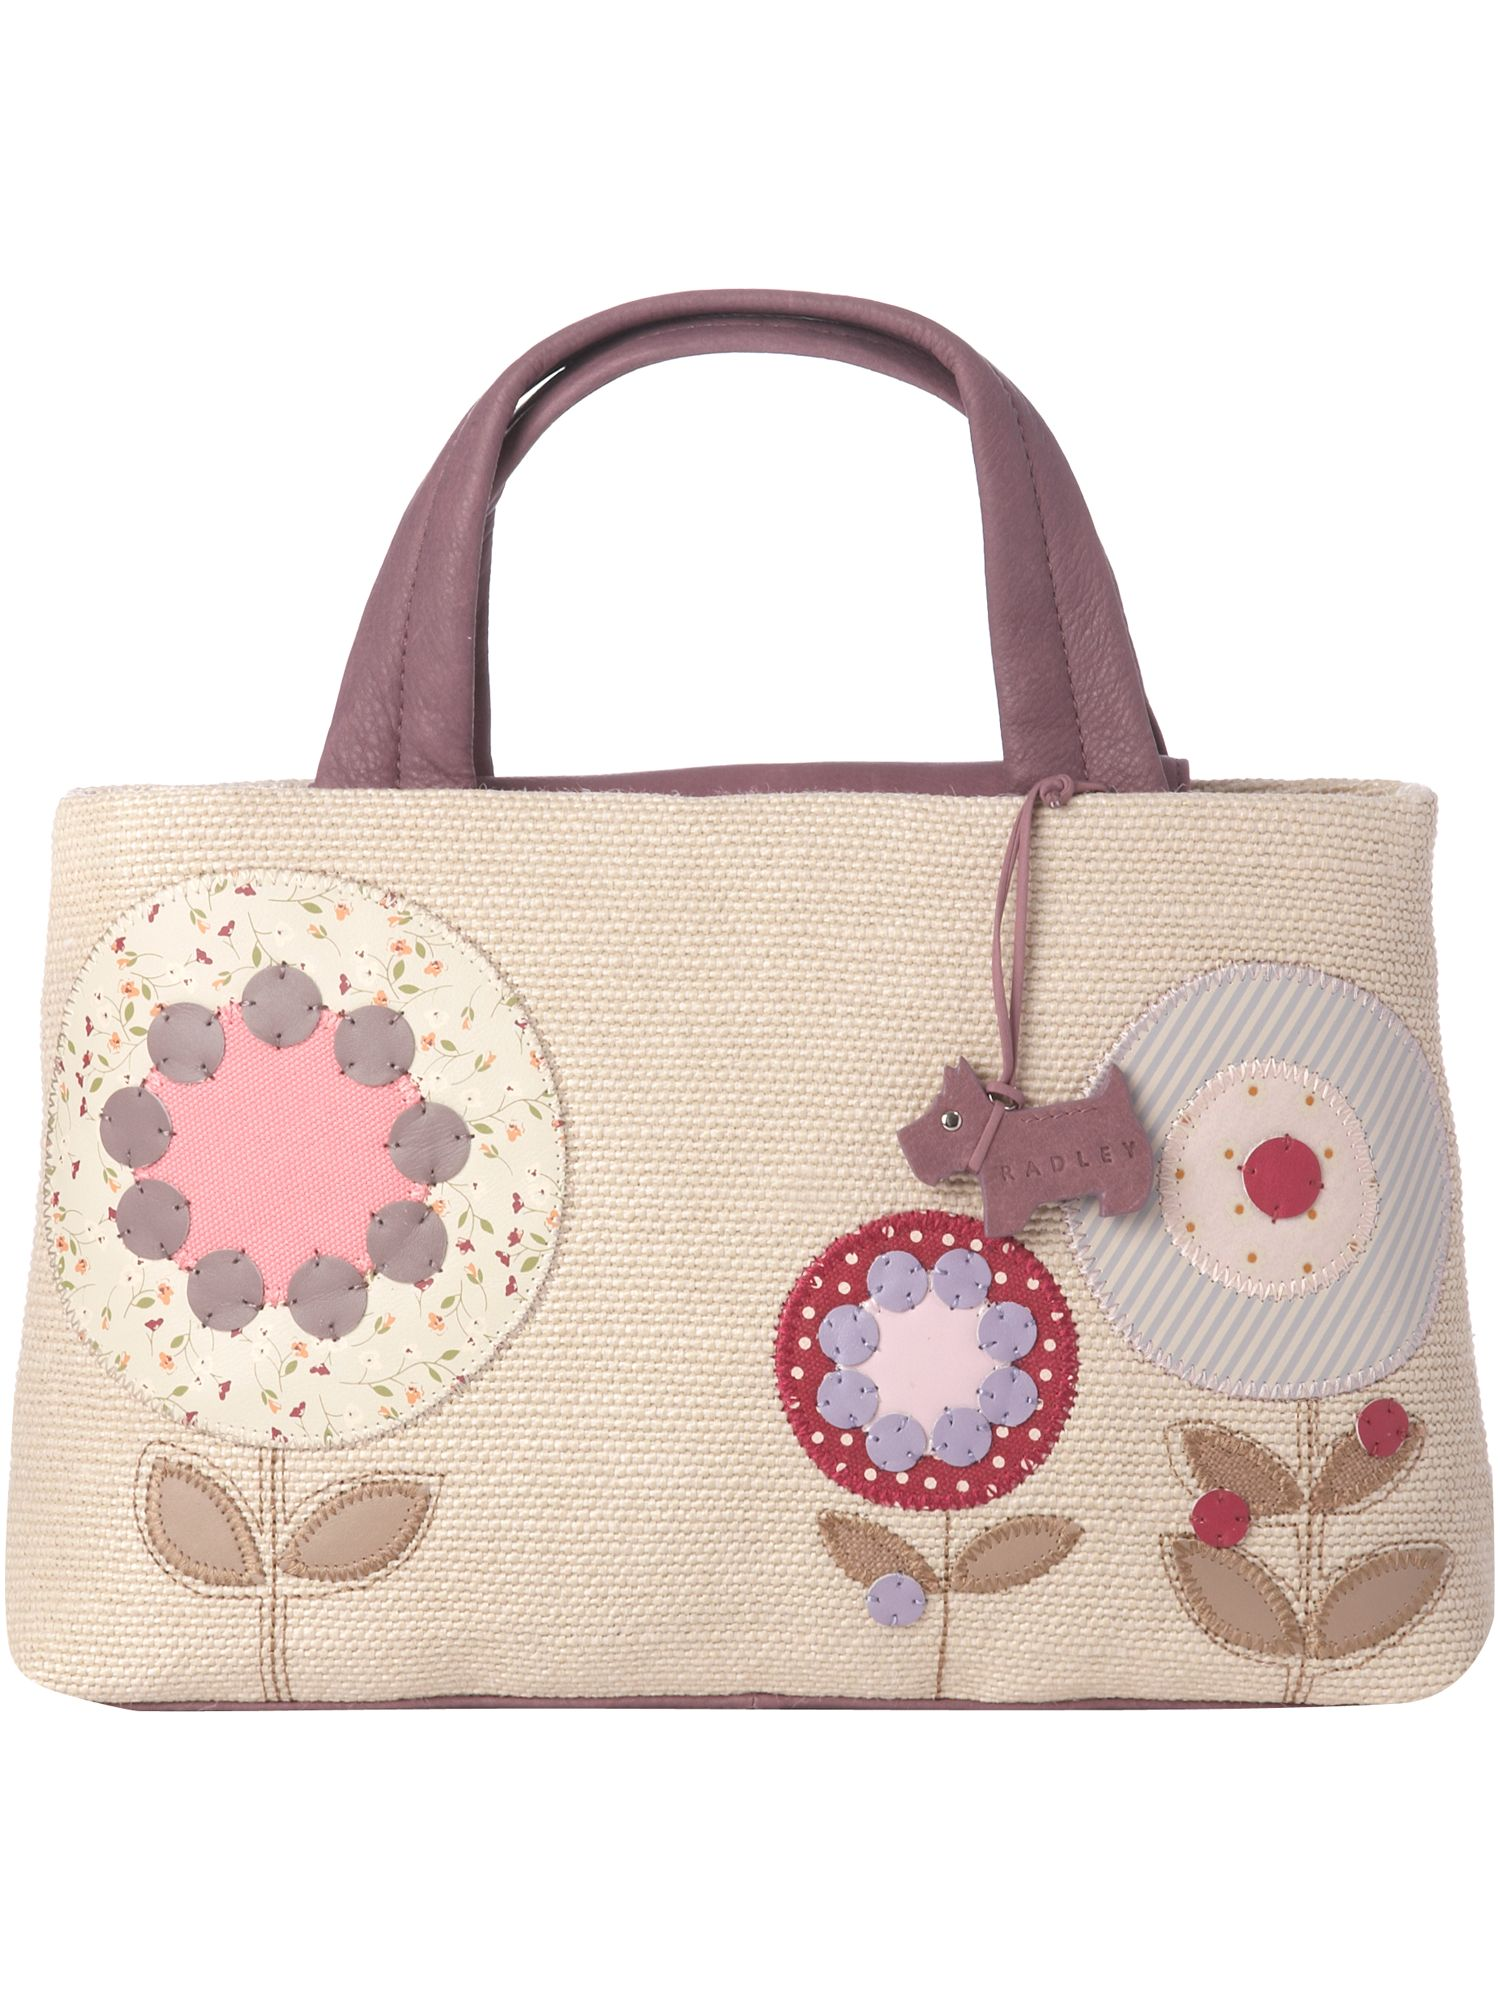 Olney medium canvas tote bag